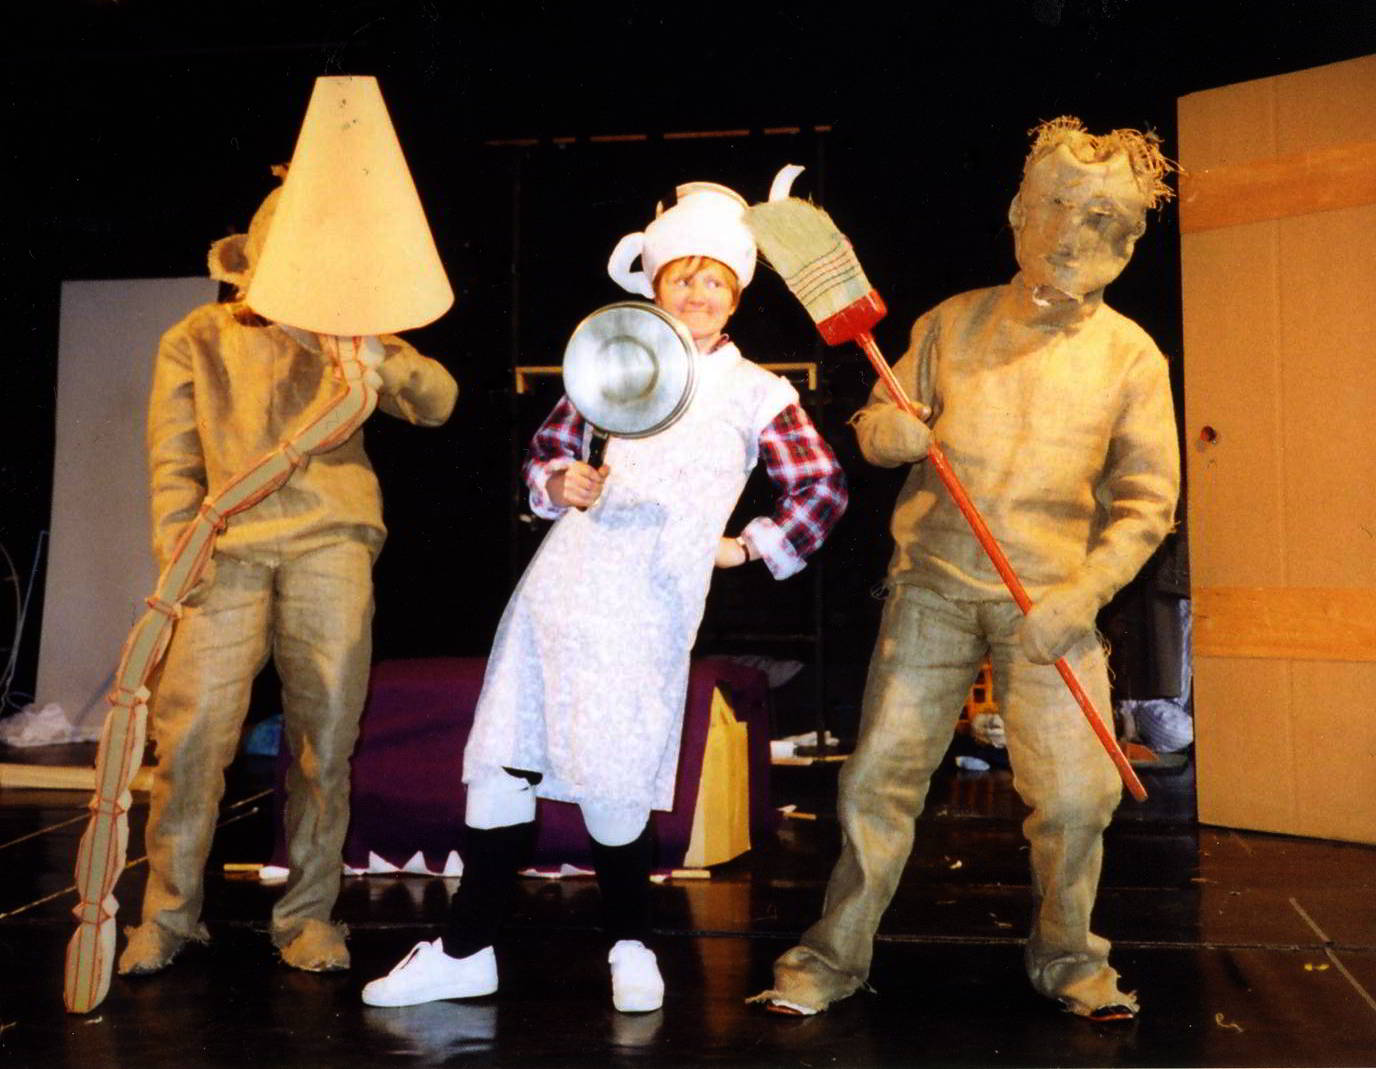 hessian bag figures holding a lampshade (L) and a broom (R) in dance rehearsal with woman dressed in white holding a saucepan